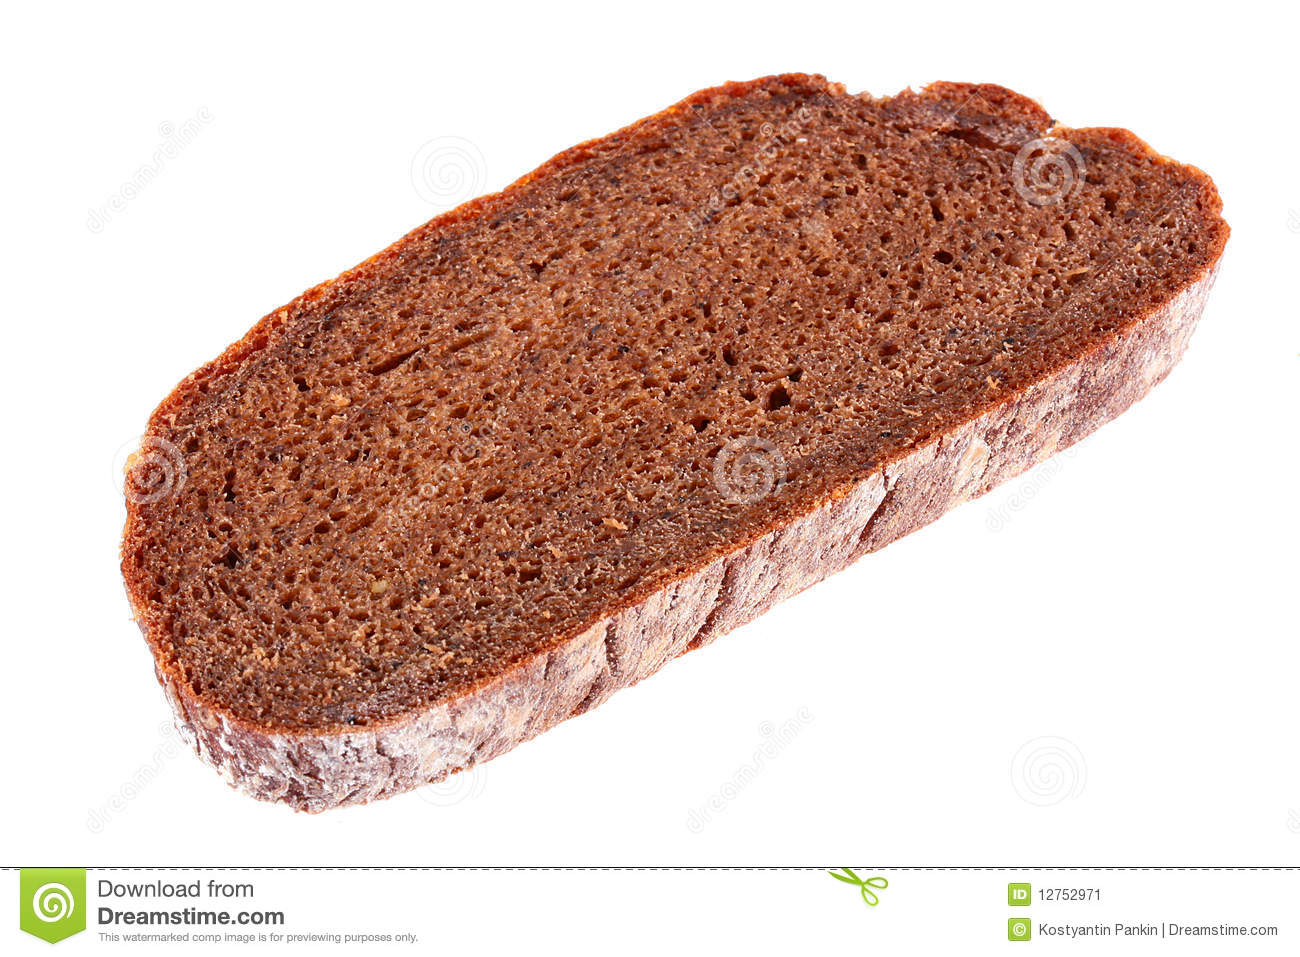 Black Bread Stock Image - Image: 12752971